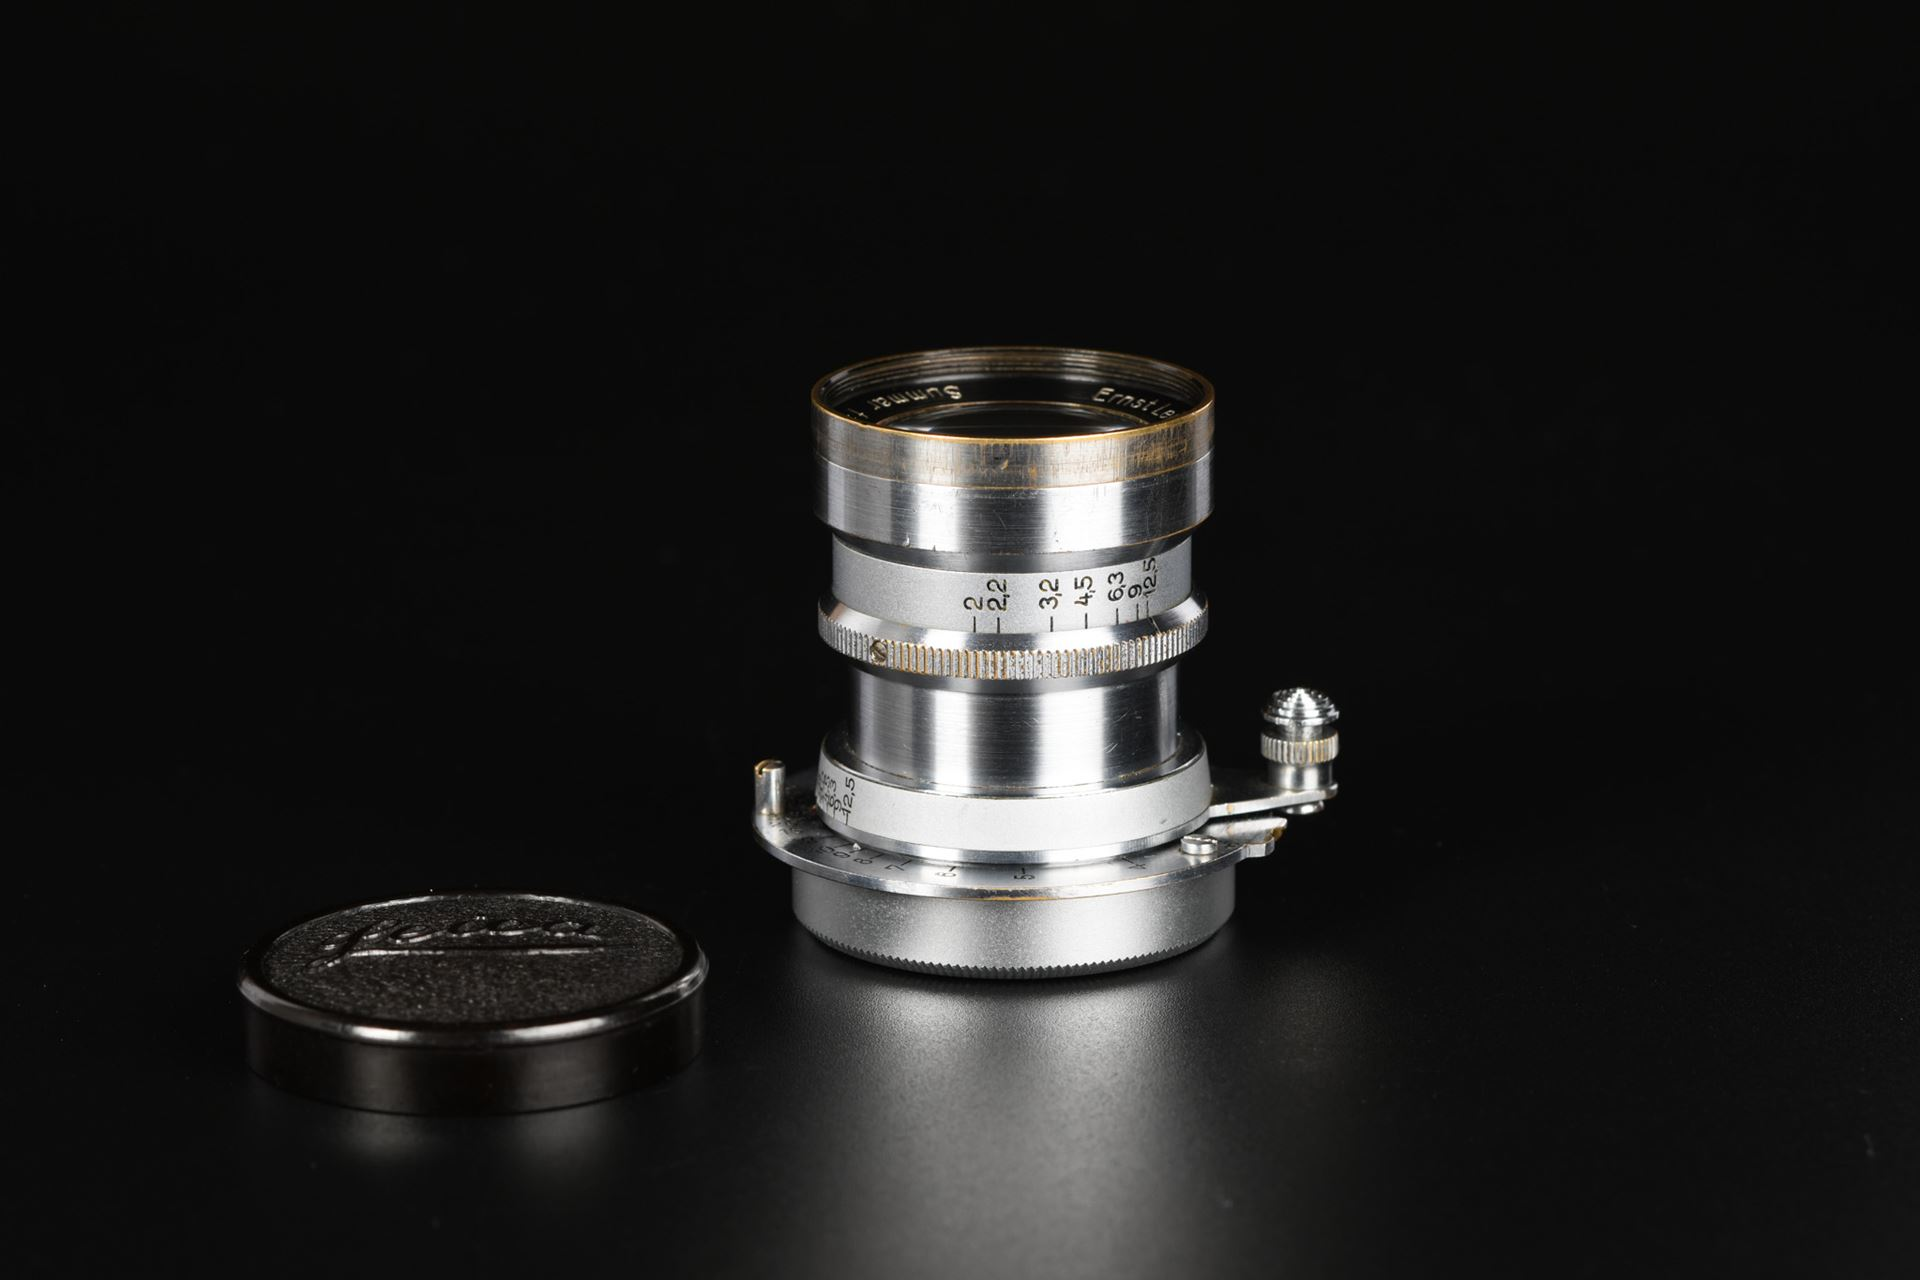 Picture of Leica Rigid Summar 5cm 50mm f/2 Silver Chrome Screw Mount LTM L39